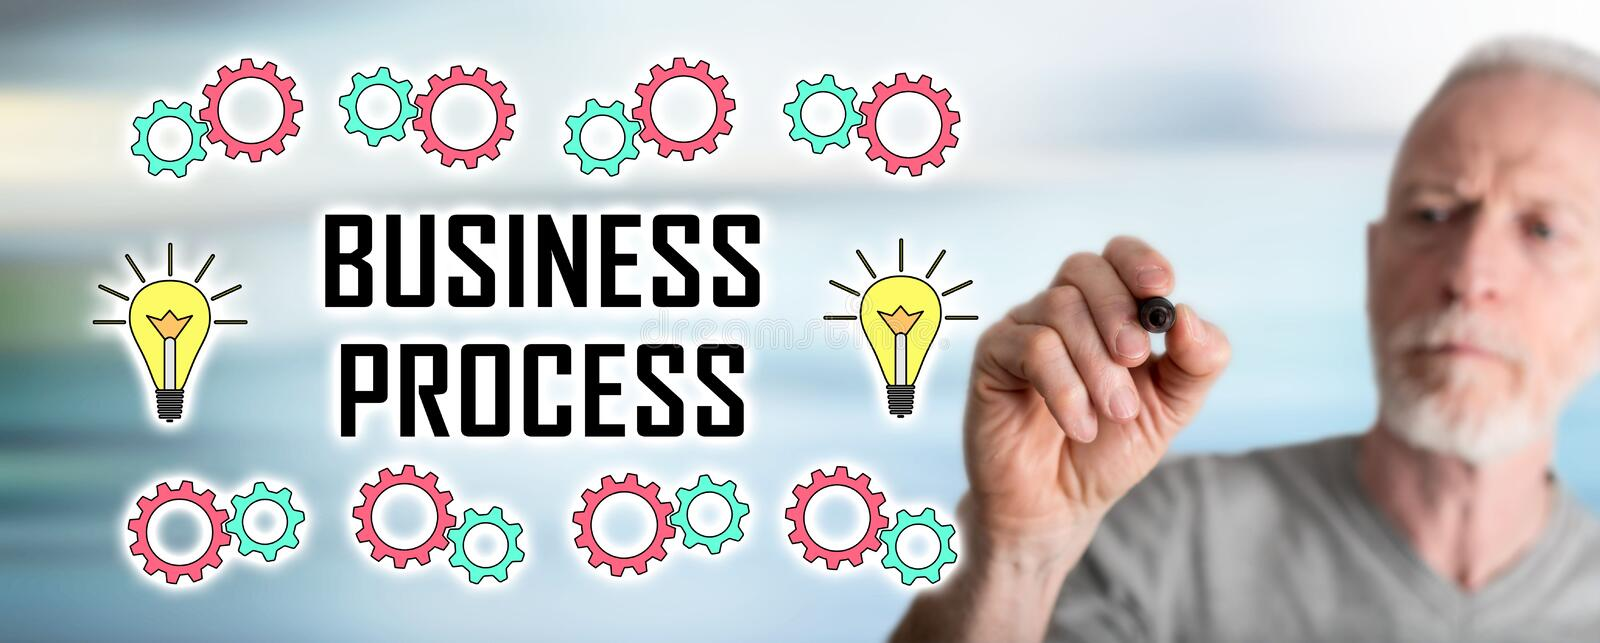 Man drawing business process concept royalty free stock images